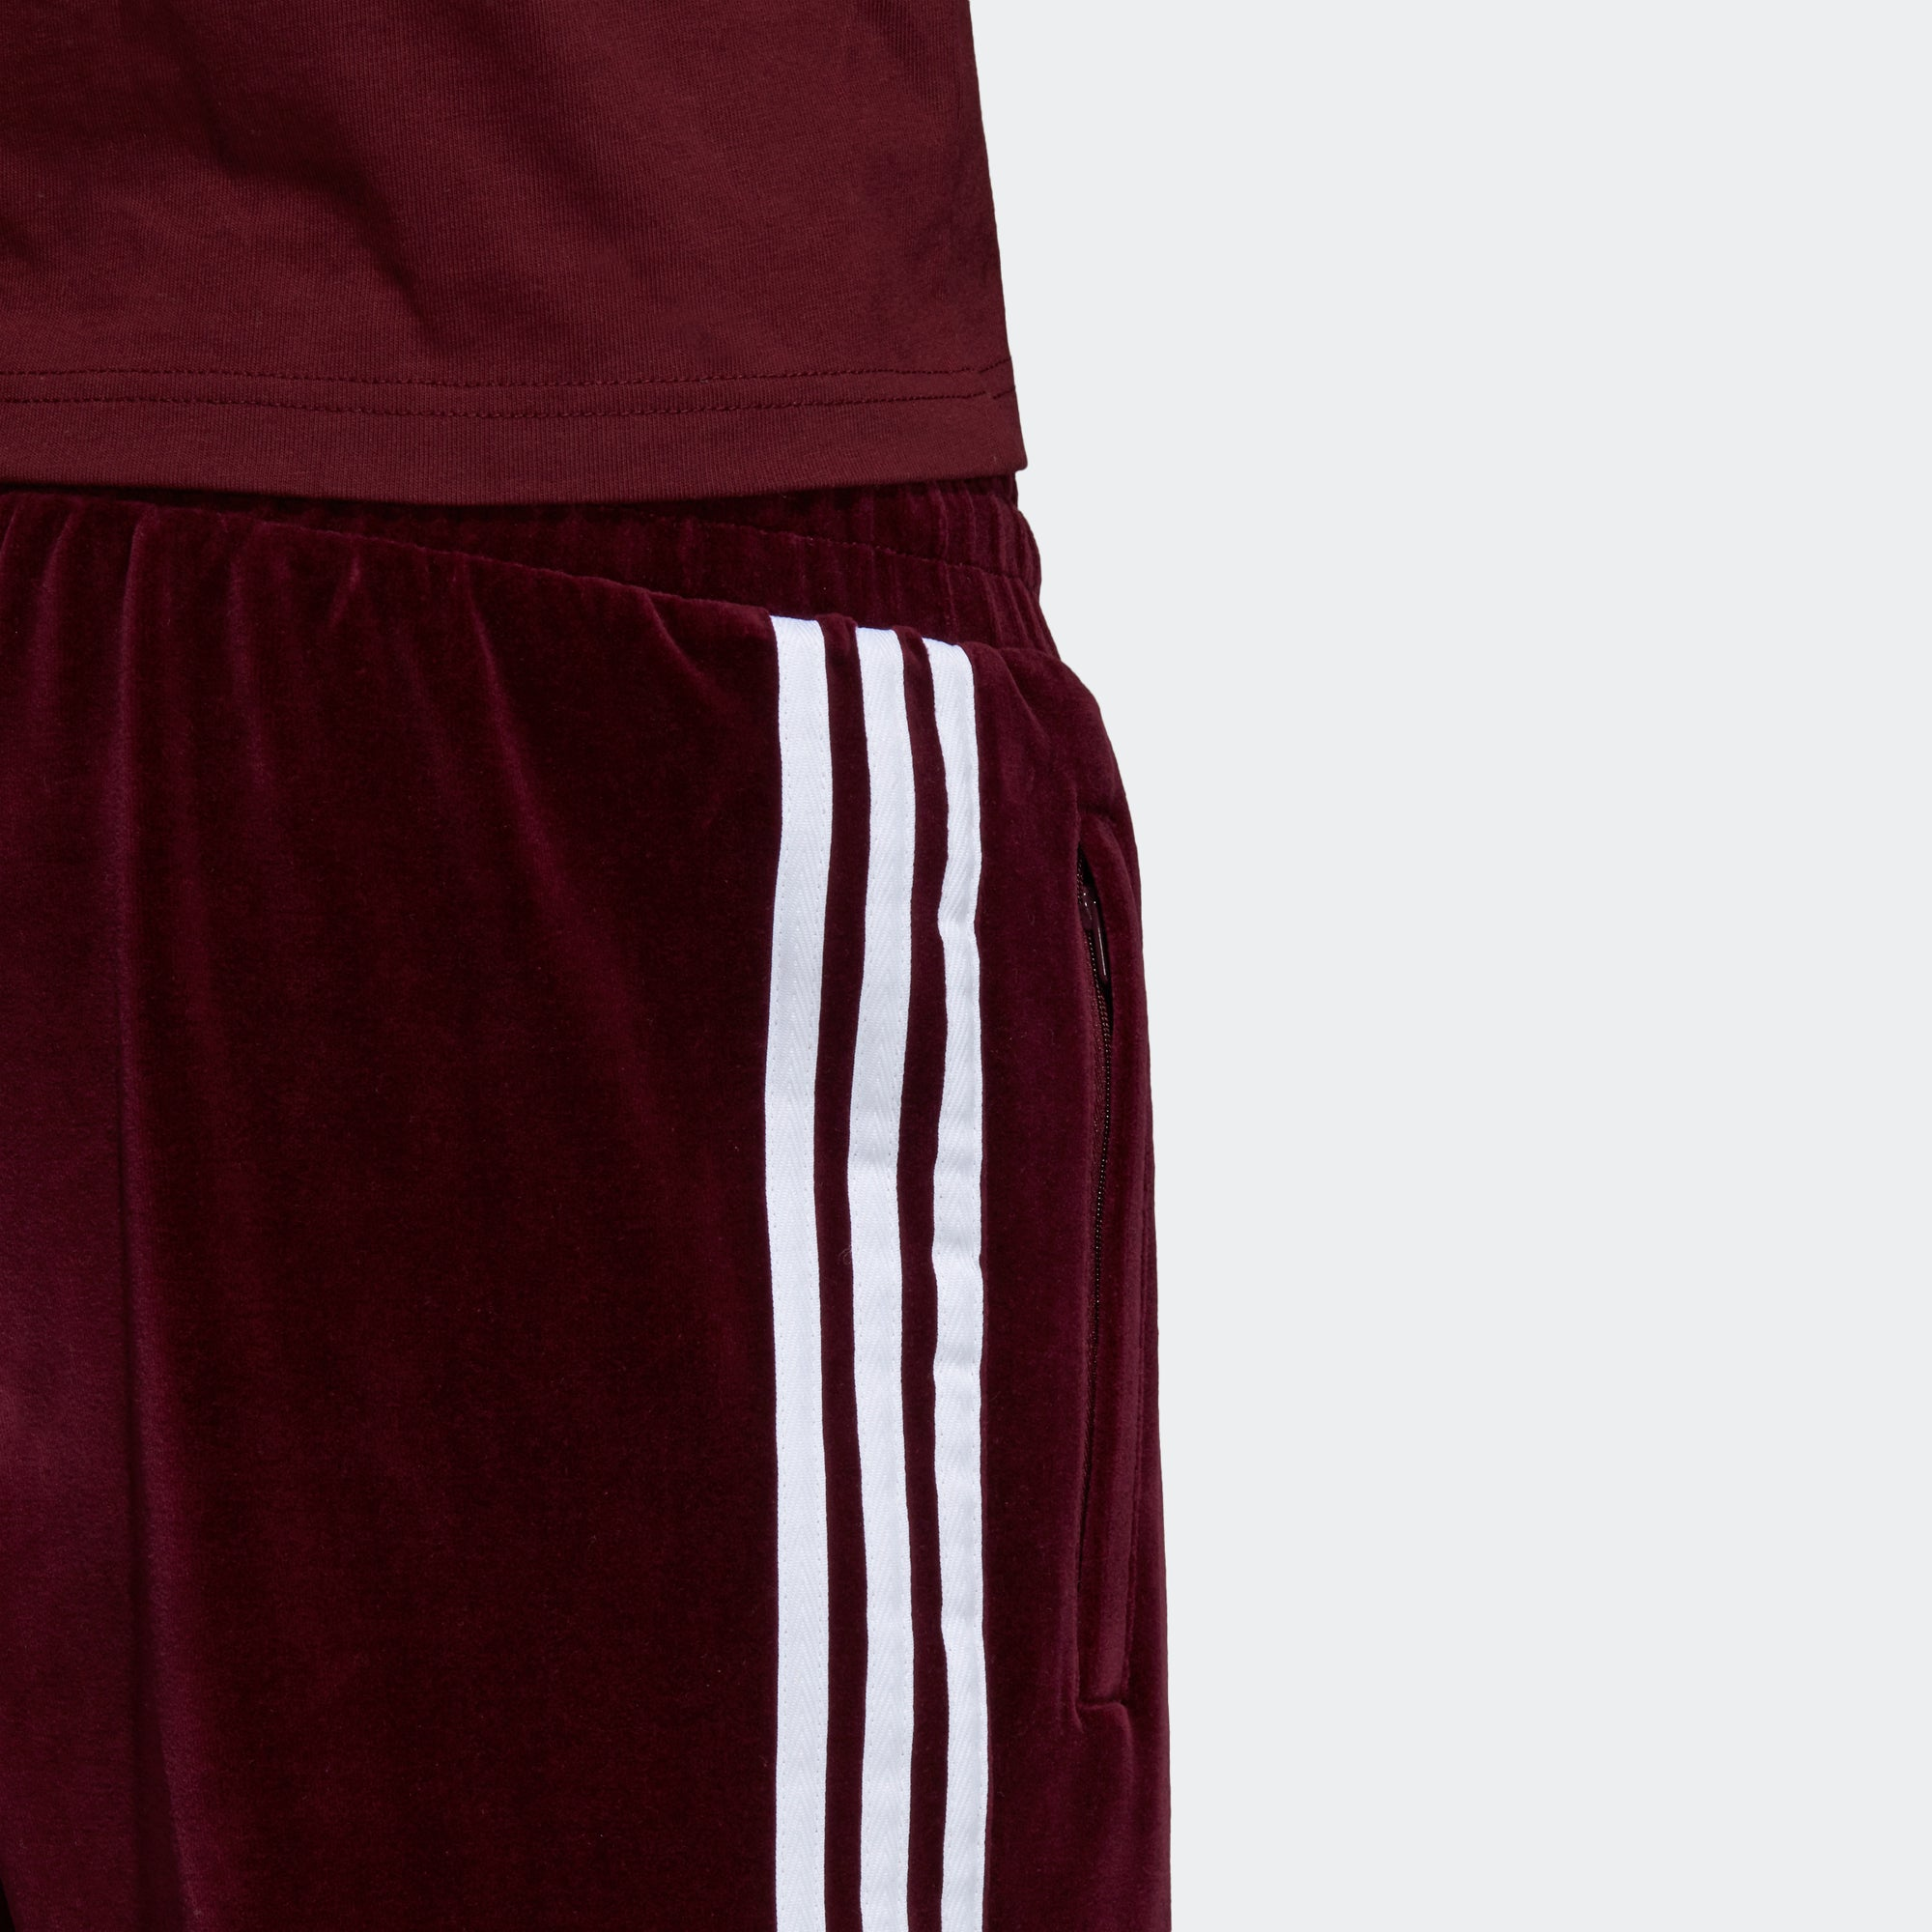 adidas BB Track Pants Maroon DH5784 | Chicago City Sports